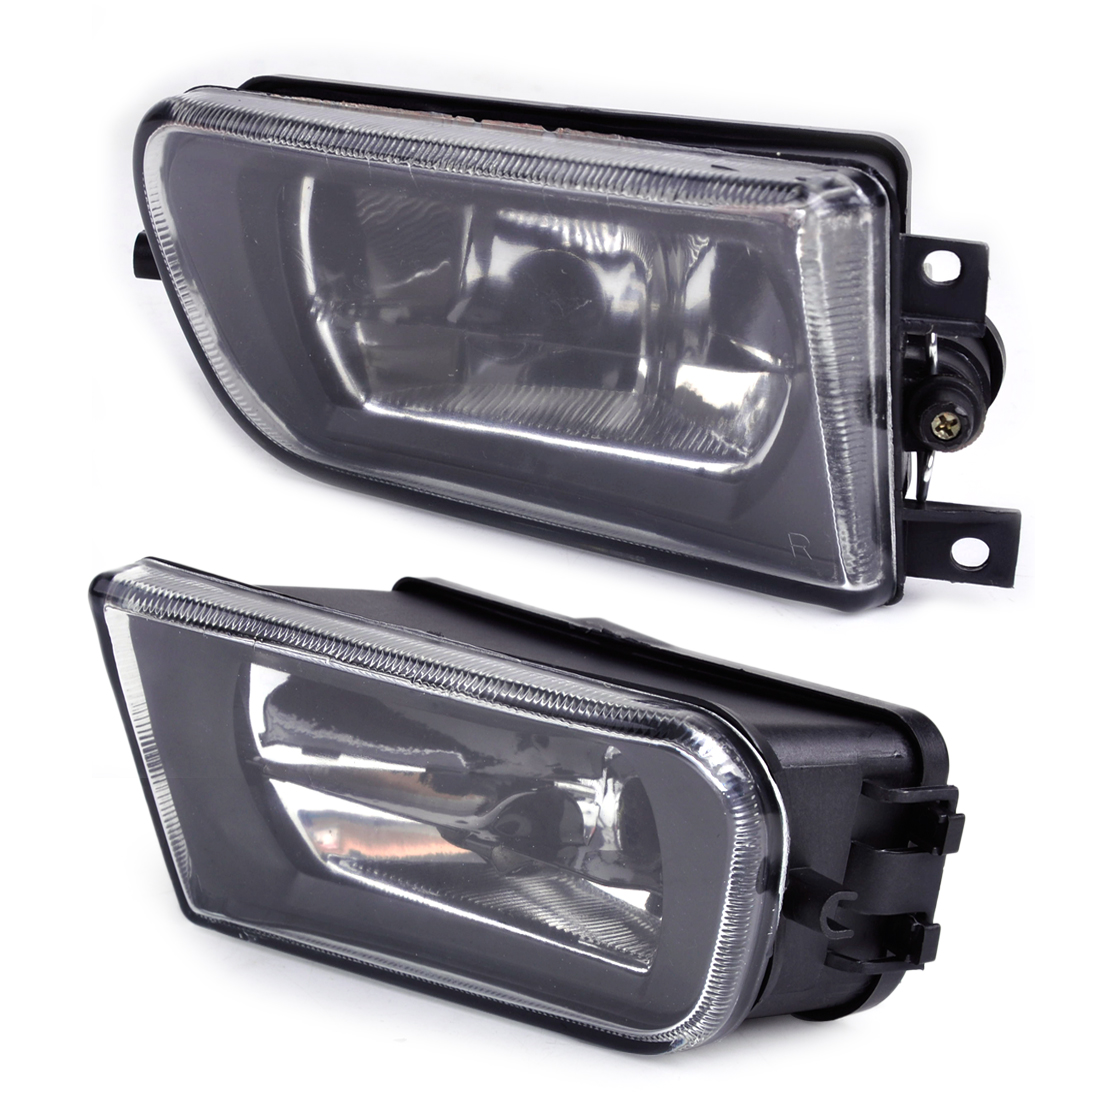 DWCX 63178360575, 63178360576 22pcs Fog Light Lamp for BMW E36 Z3 E39 5 Series 528i 540i 535i 1997 1998 1999 2000 2pcs right left fog light lamp for b mw e39 5 series 528i 540i 535i 1997 2000 e36 z3 2001 63178360575 63178360576